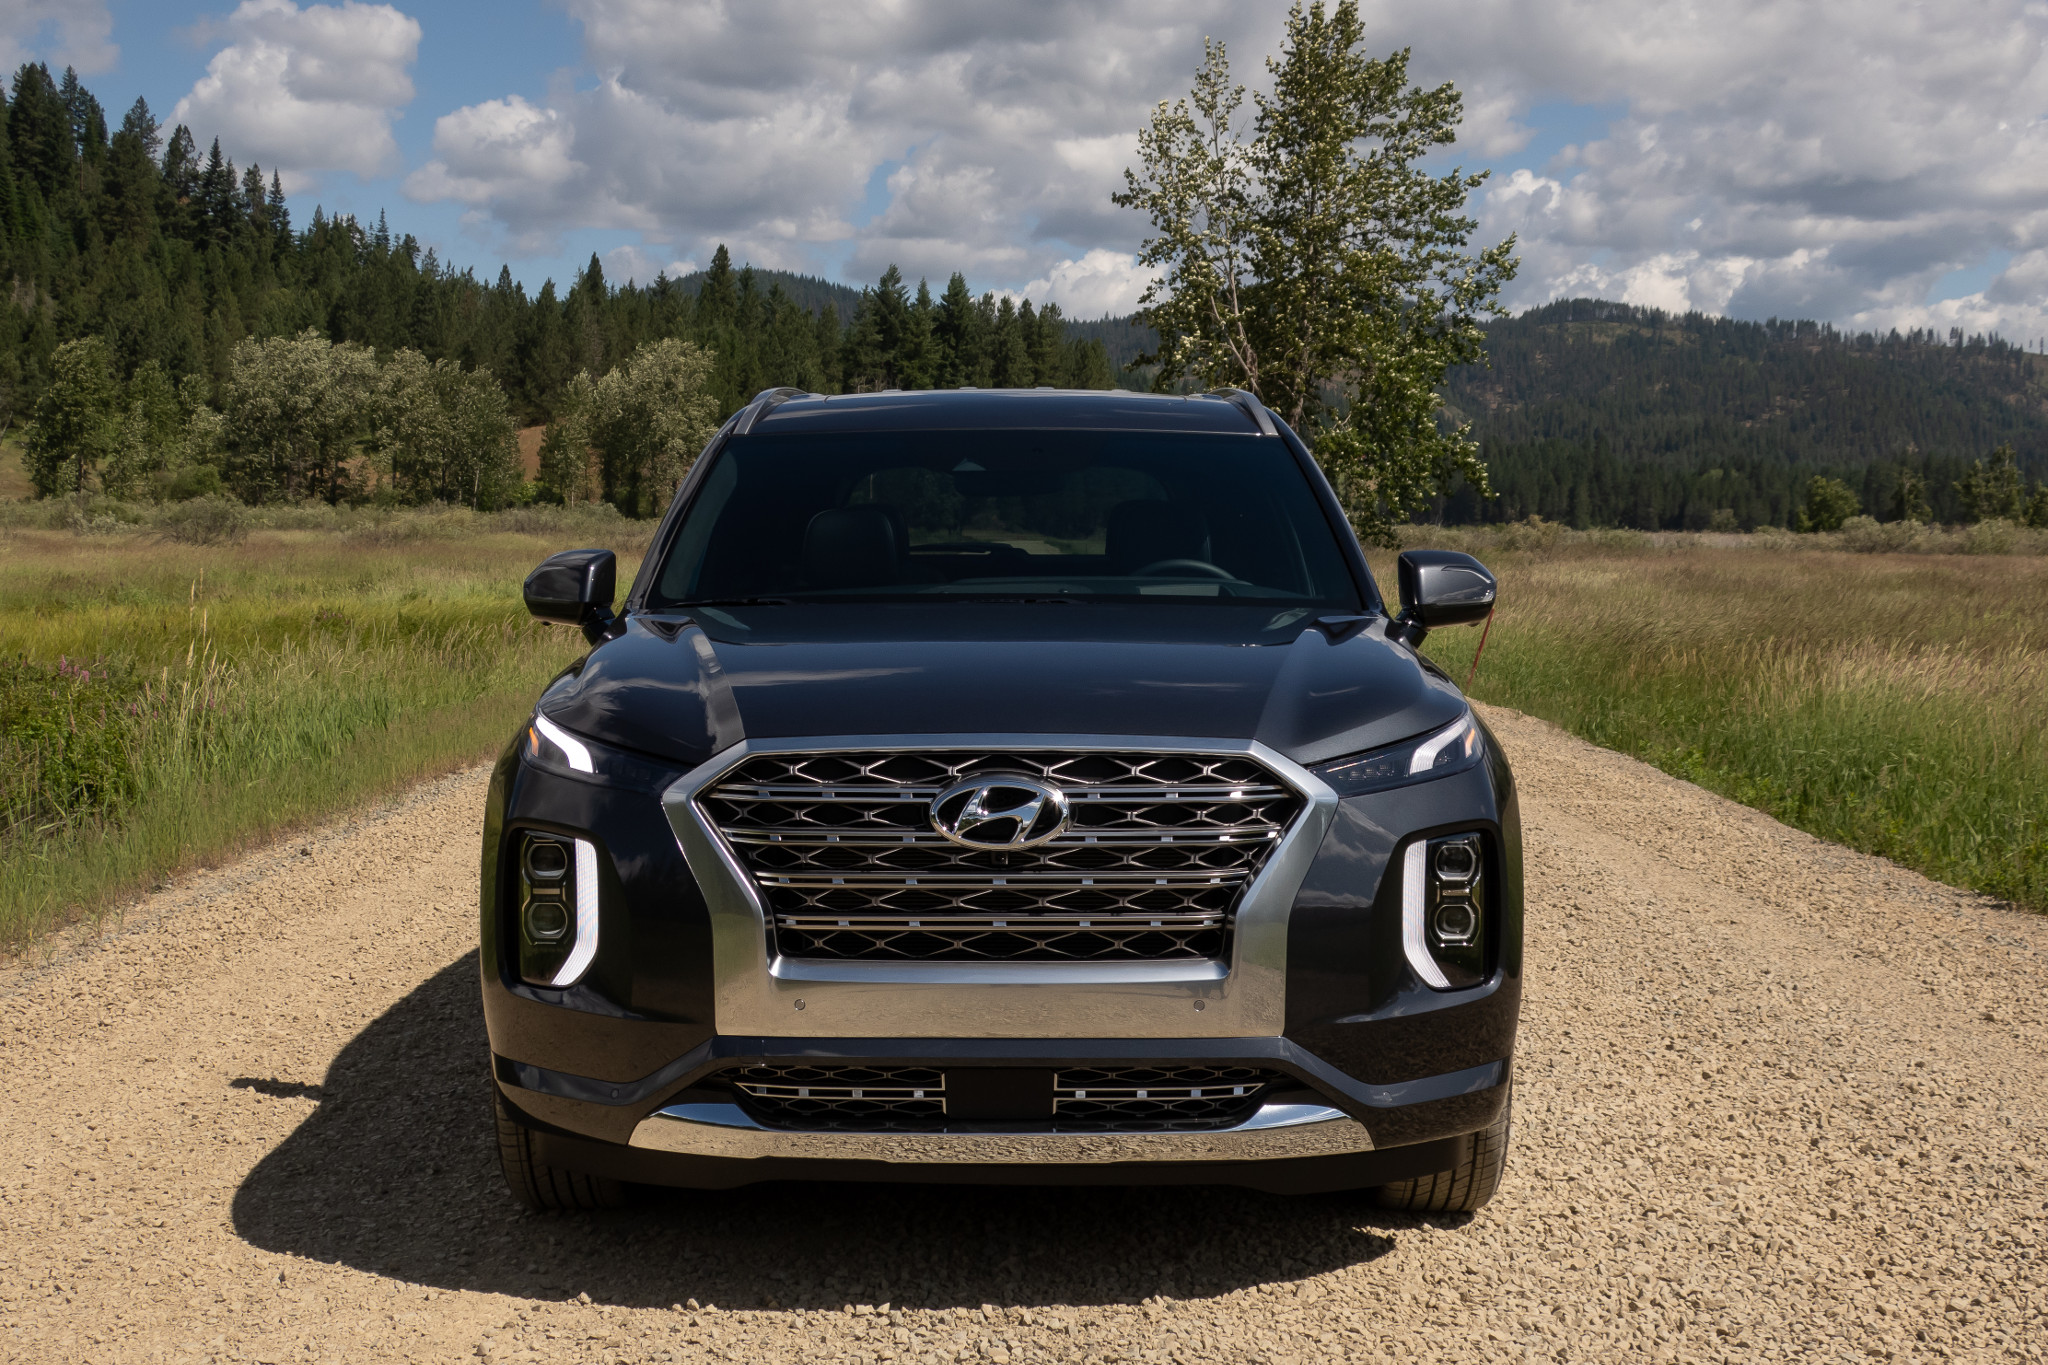 Top 5 Reviews and Videos of the Week: 2020 Hyundai Palisade Stands Out